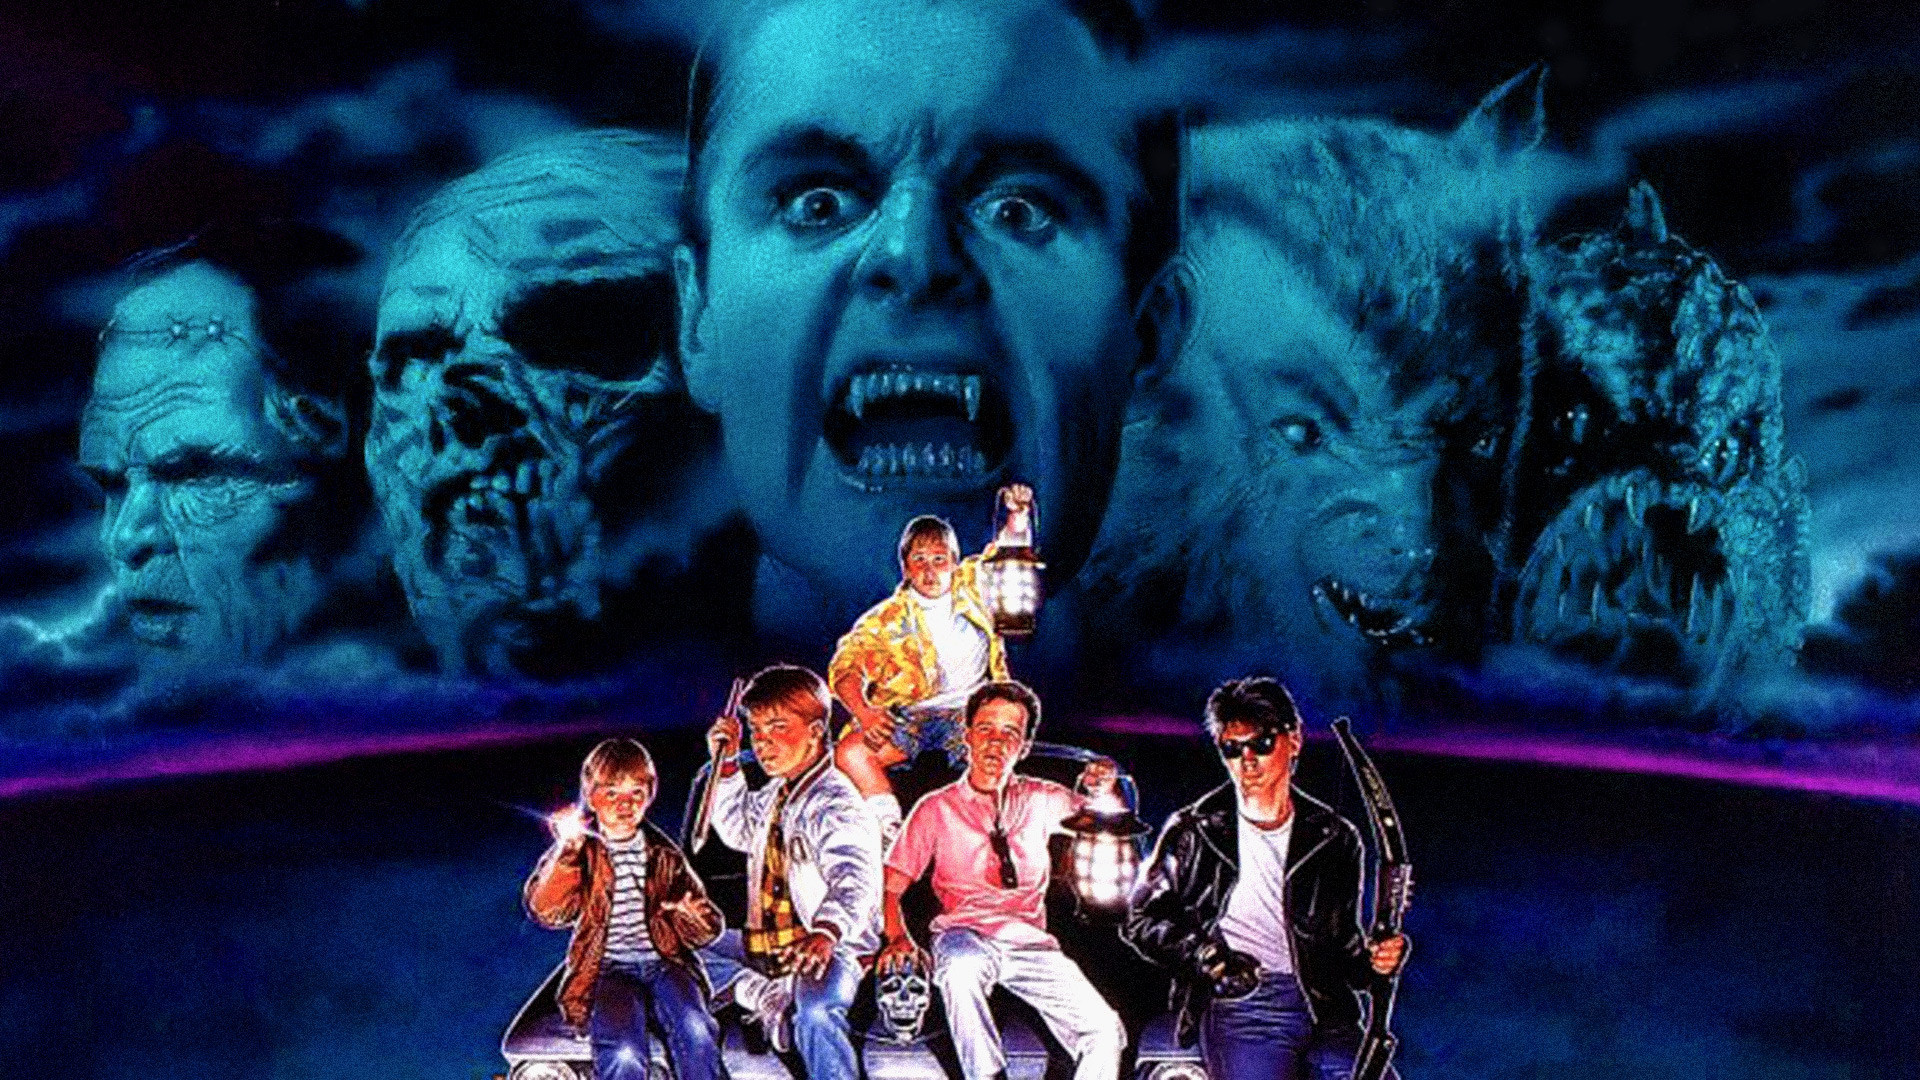 Monster Squad': An 80s Cult Classic For Halloween   Goomba Stomp